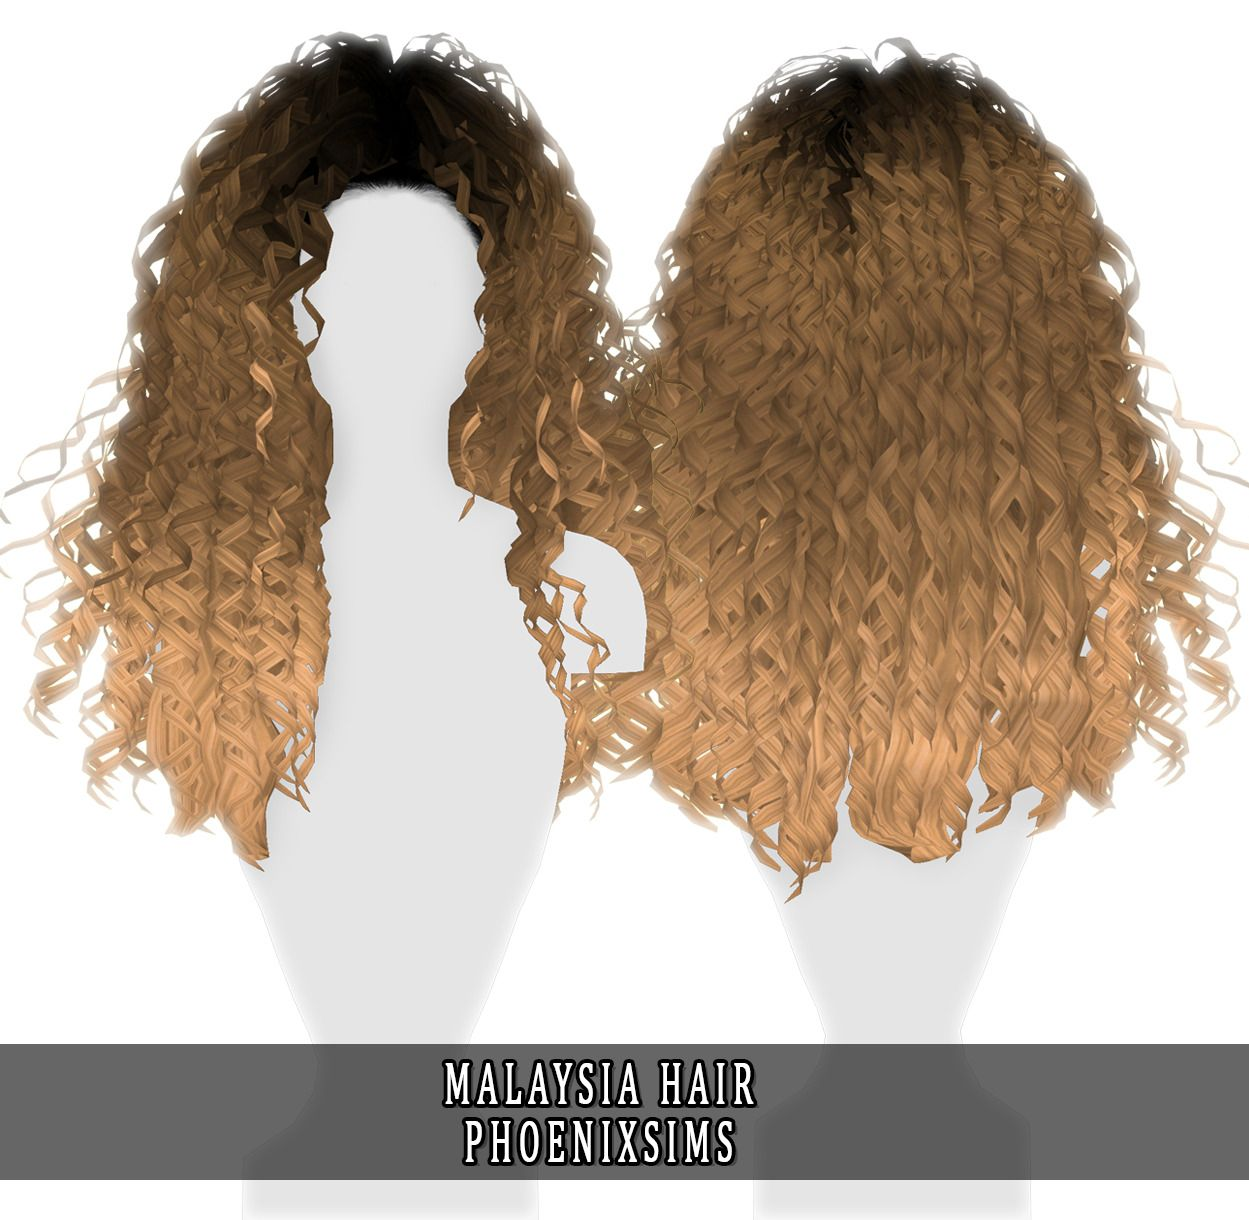 Phoenix-Sims — MALAYSIA HAIR 60 swatches; All Lod's; HQ mod... em ...